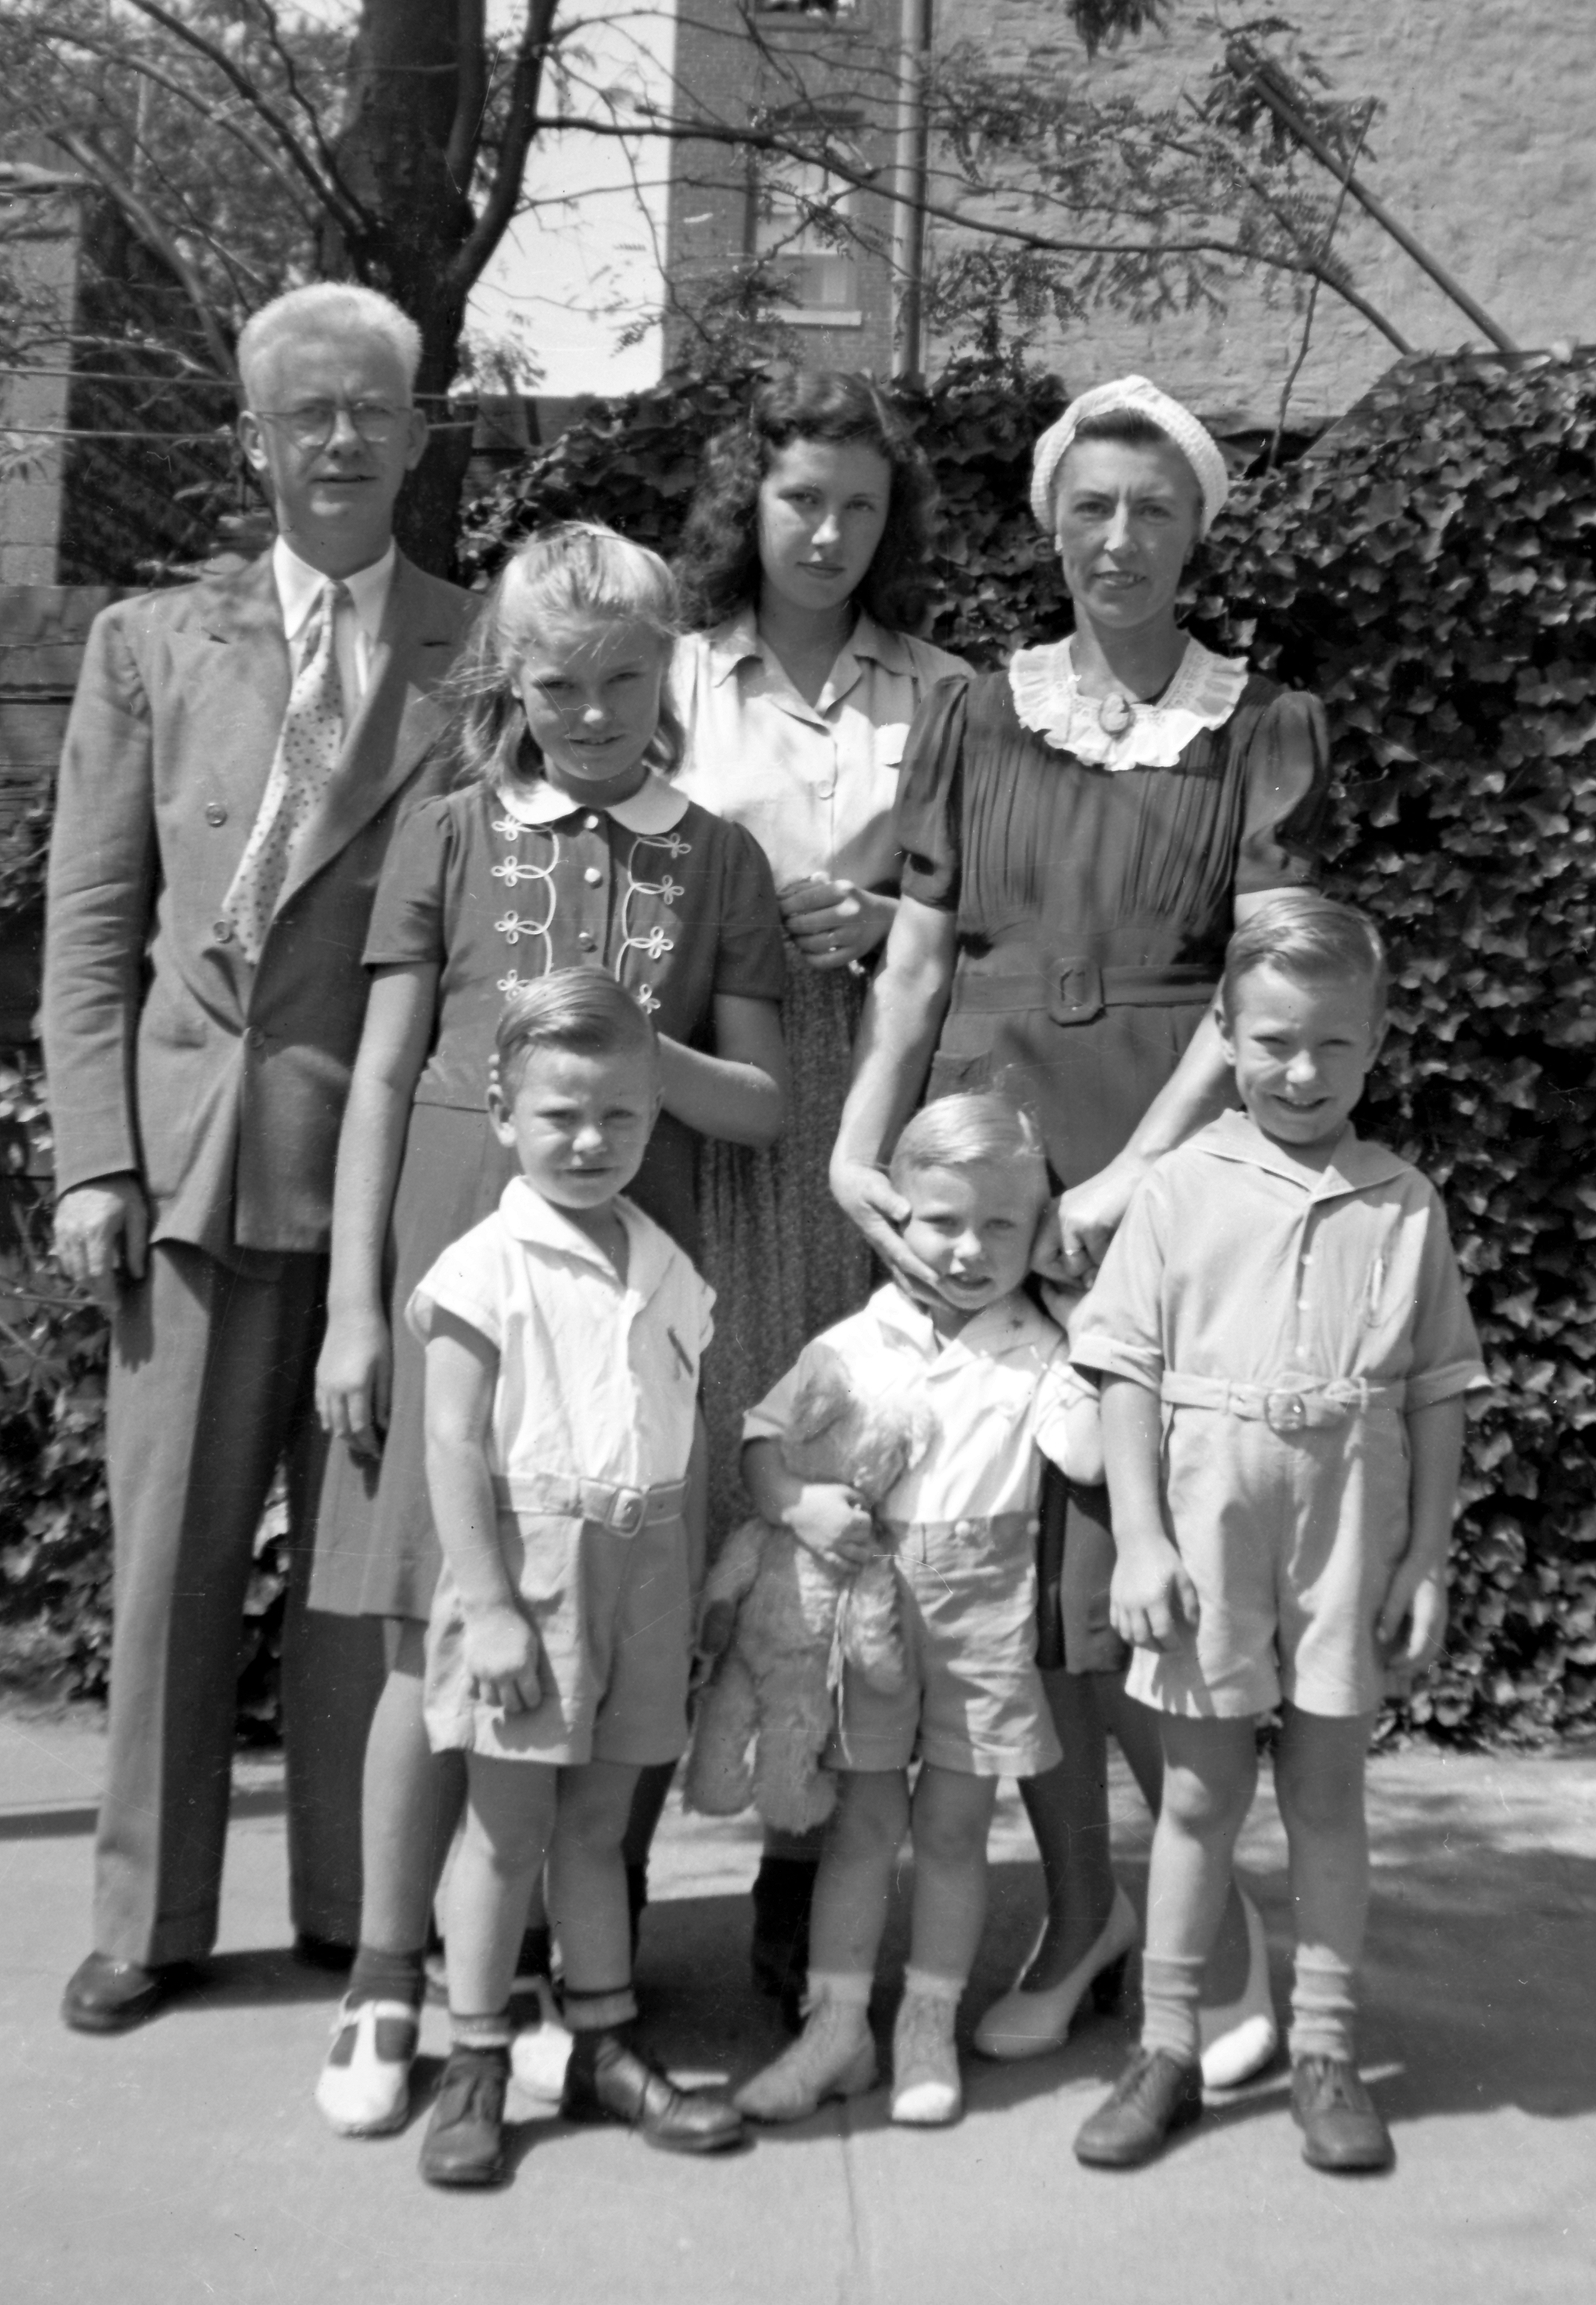 Edward_Holihan_Family_1940's